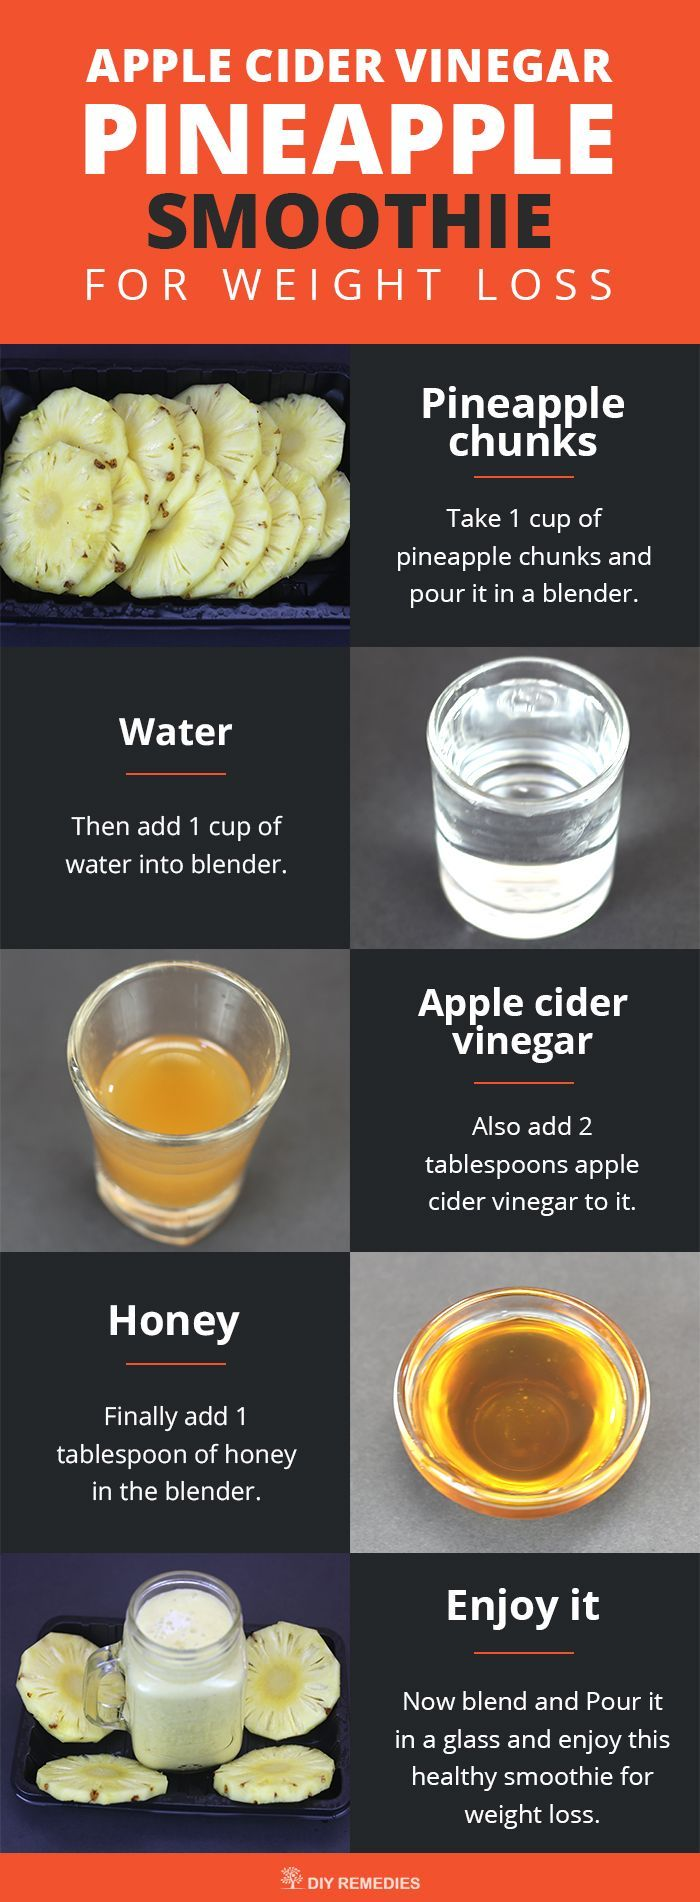 Apple Cider Vinegar Pineapple Smoothie for Weight Loss Ingredients: Apple cider vinegar – 2 tablespoons, Pineapple chunks – 1 cup, Honey – 1 tablespoon, Water – 1 cup